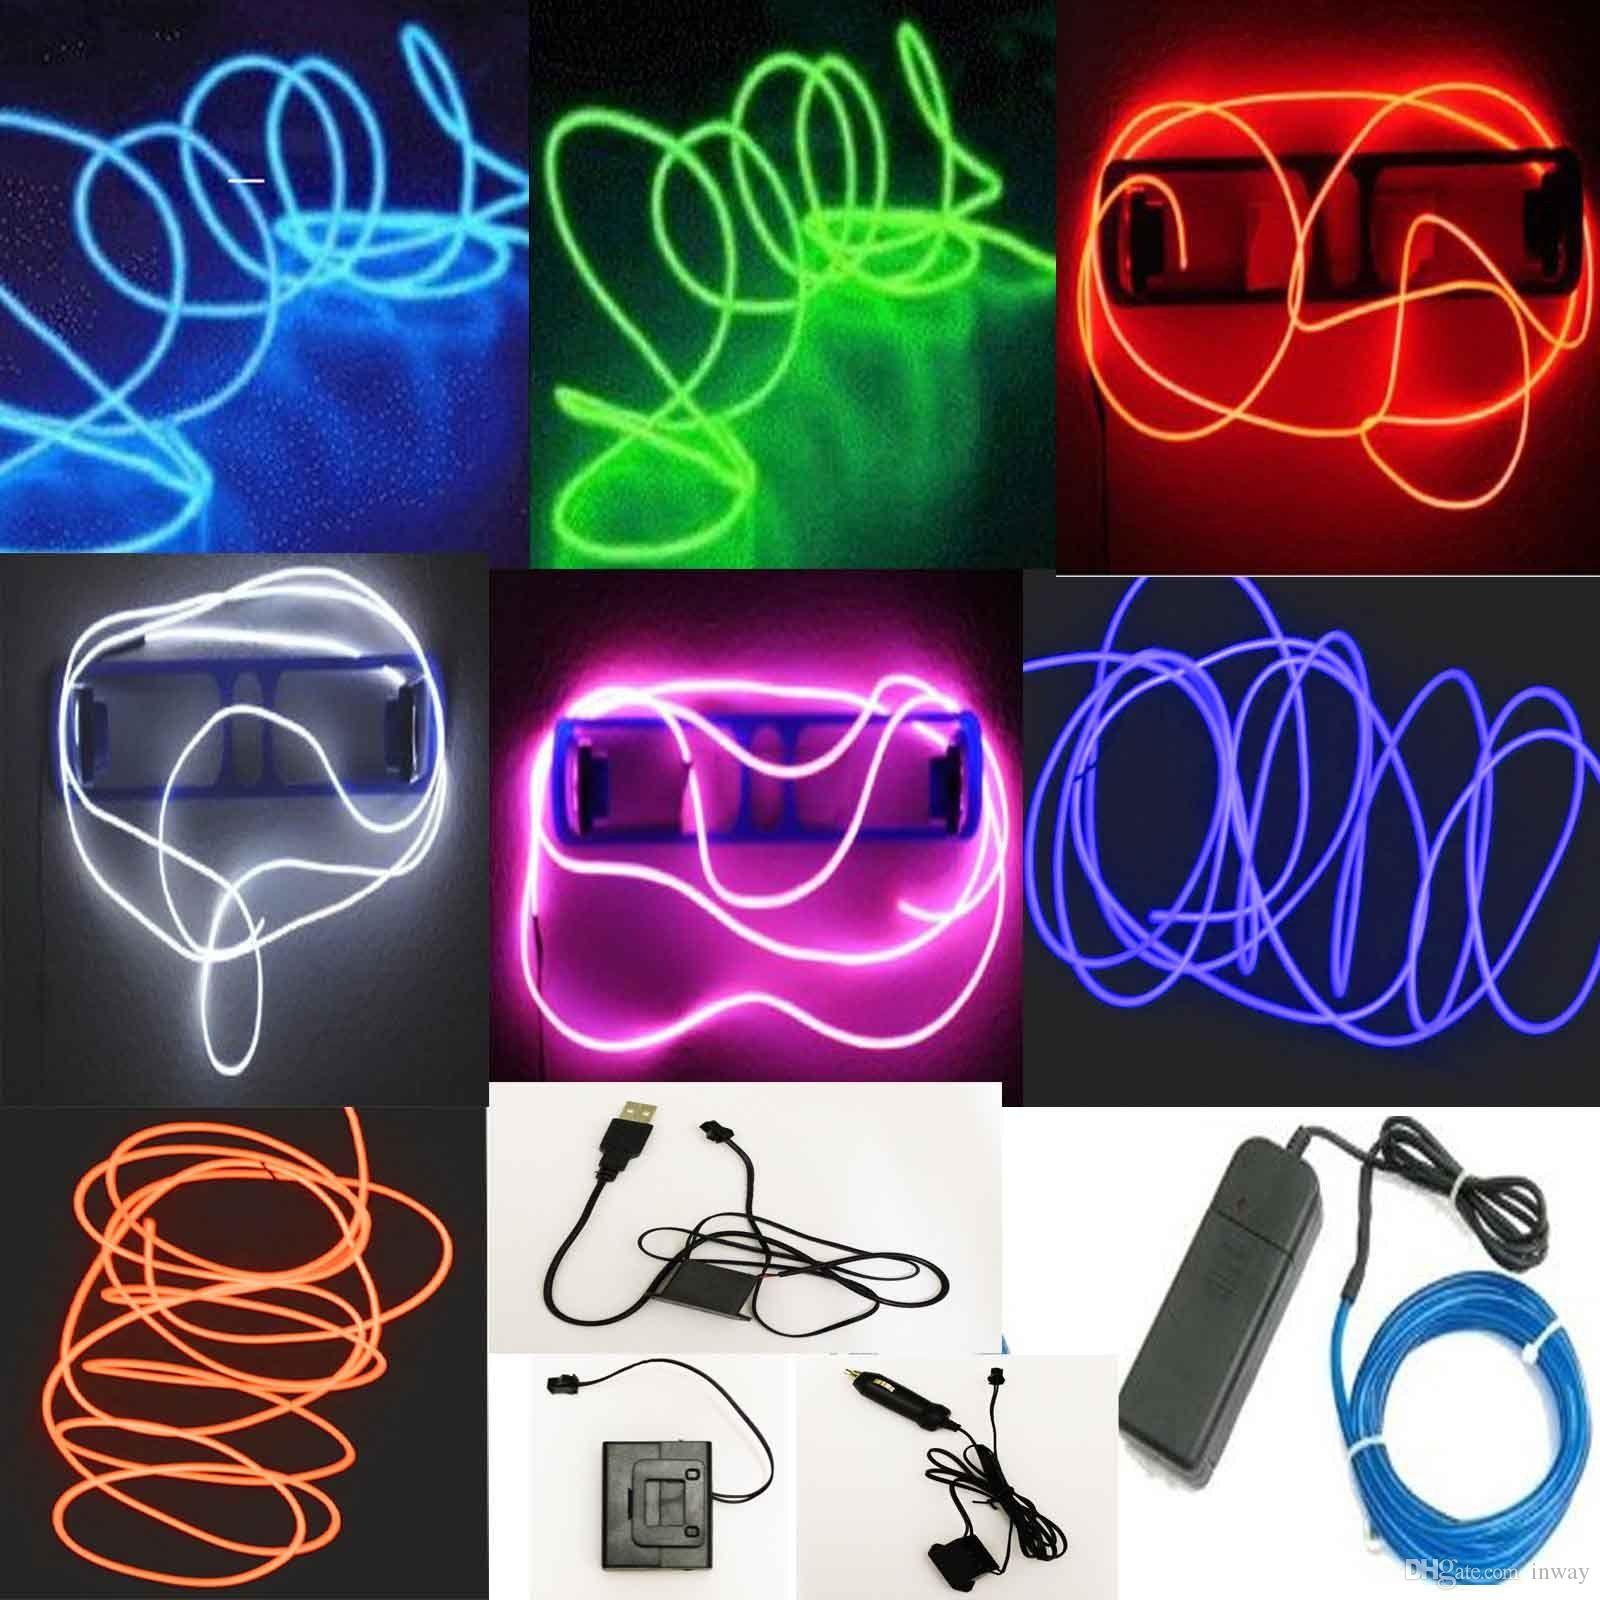 5m flexible neon led light glow el wire string strip rope tube car 5m flexible neon led light glow el wire string strip rope tube car dance partycontroller decorative strip lights n687 a led strip light kits 3528 led strip aloadofball Images